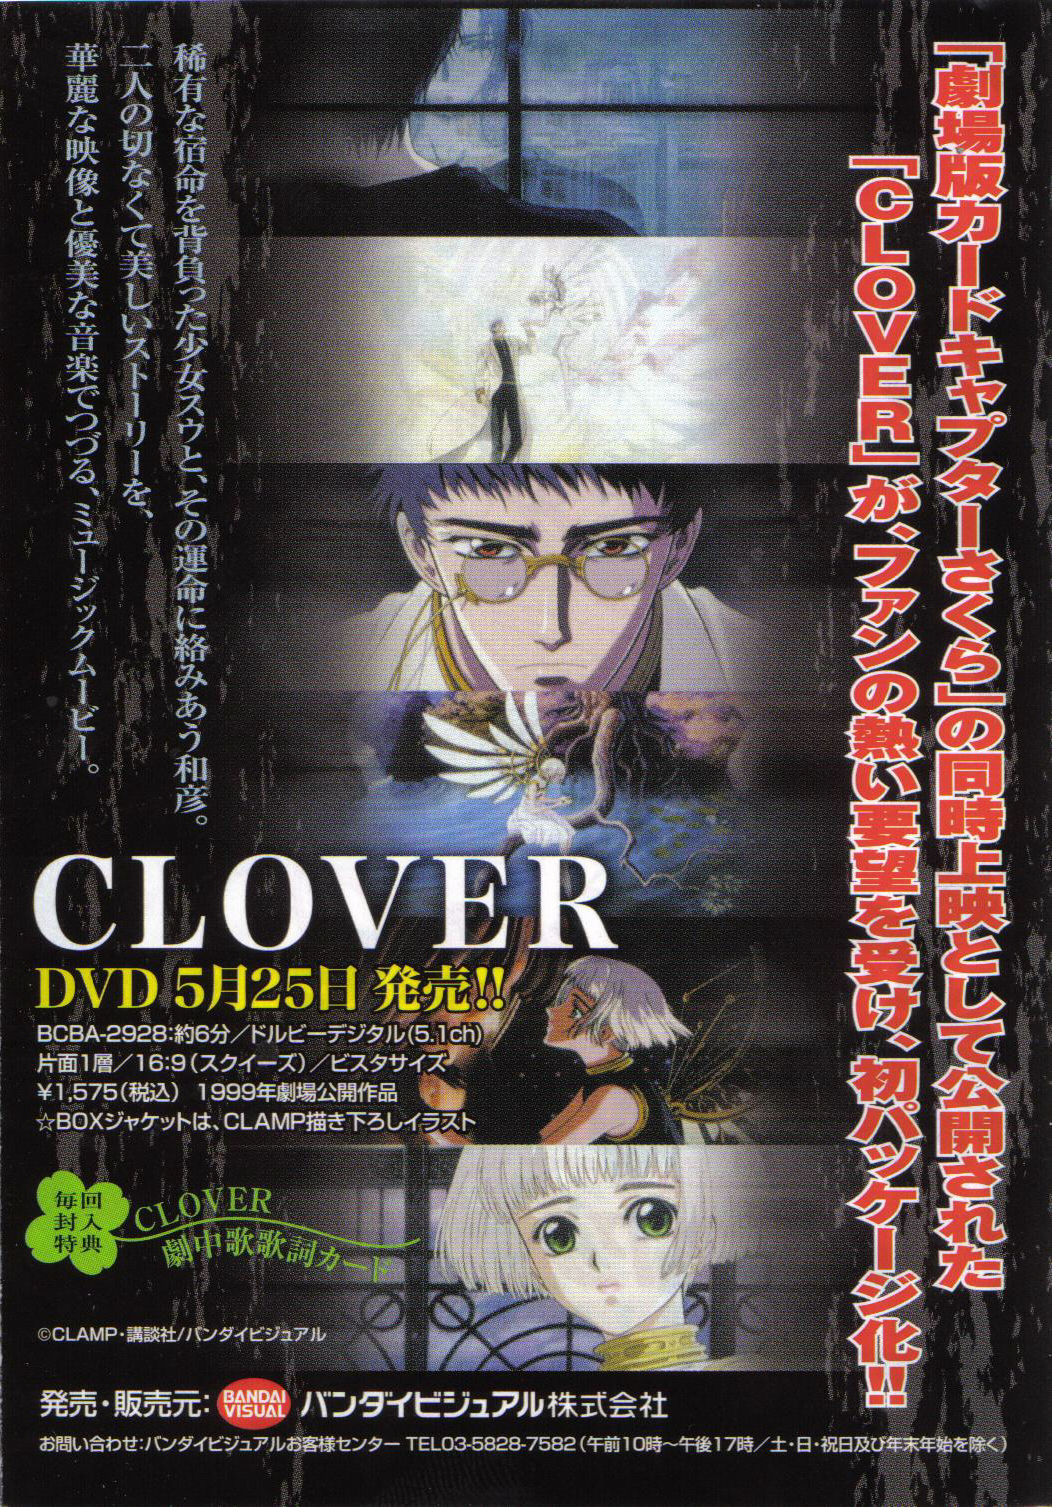 Clover clamp opening